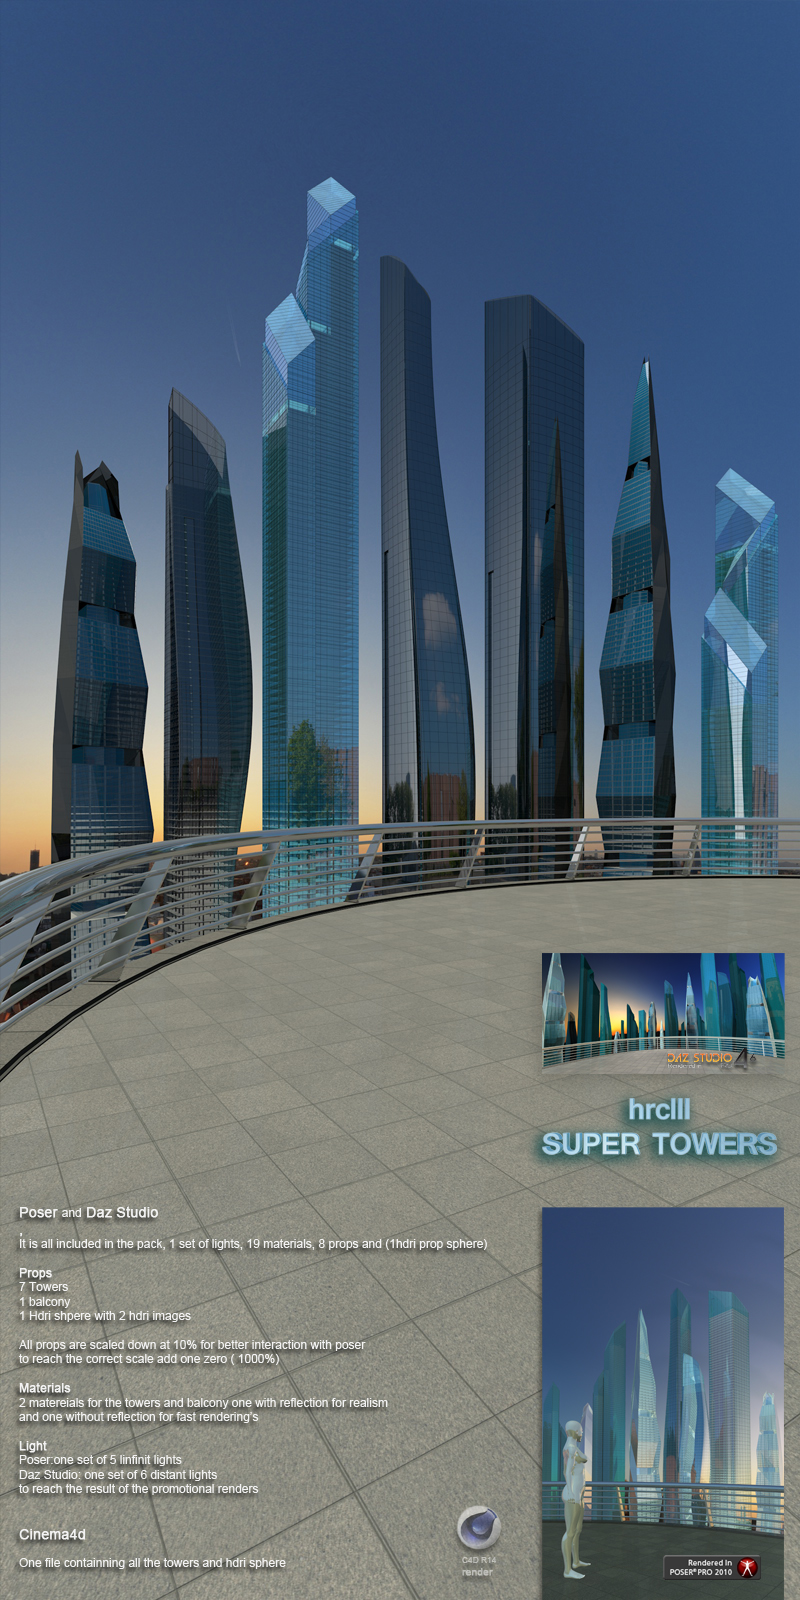 hrc lll super towers by whitemagus